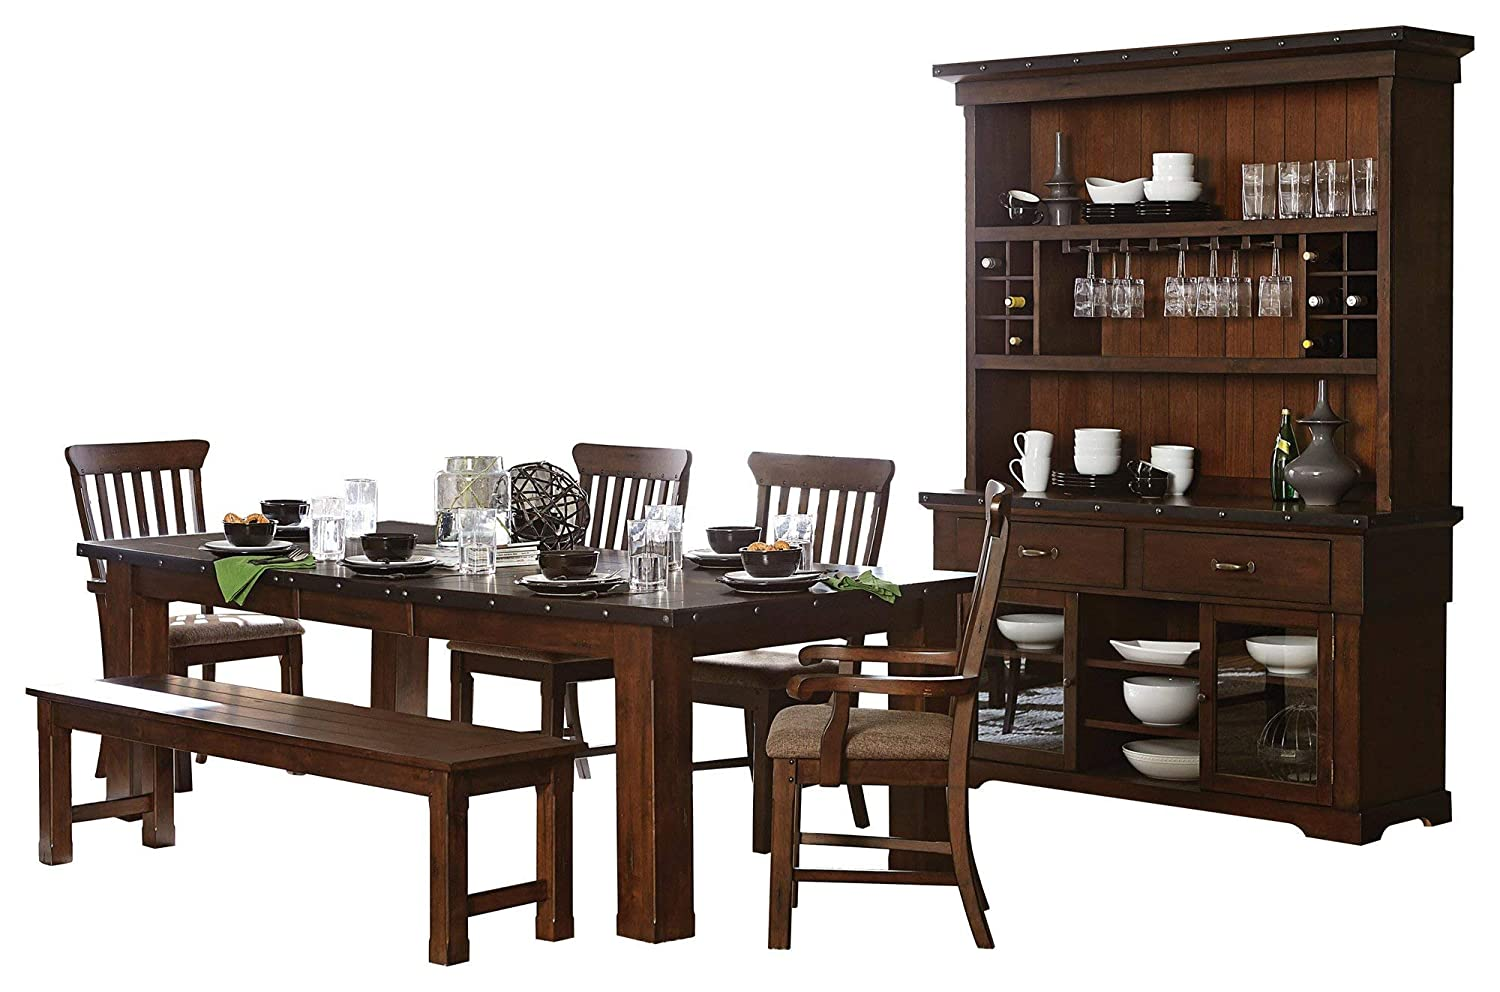 Sobrada Industrial 7PC Dining Set Table, 2 Arm, 2 Side Chair, Bench, Buffet & Hutch in Rustic Brown